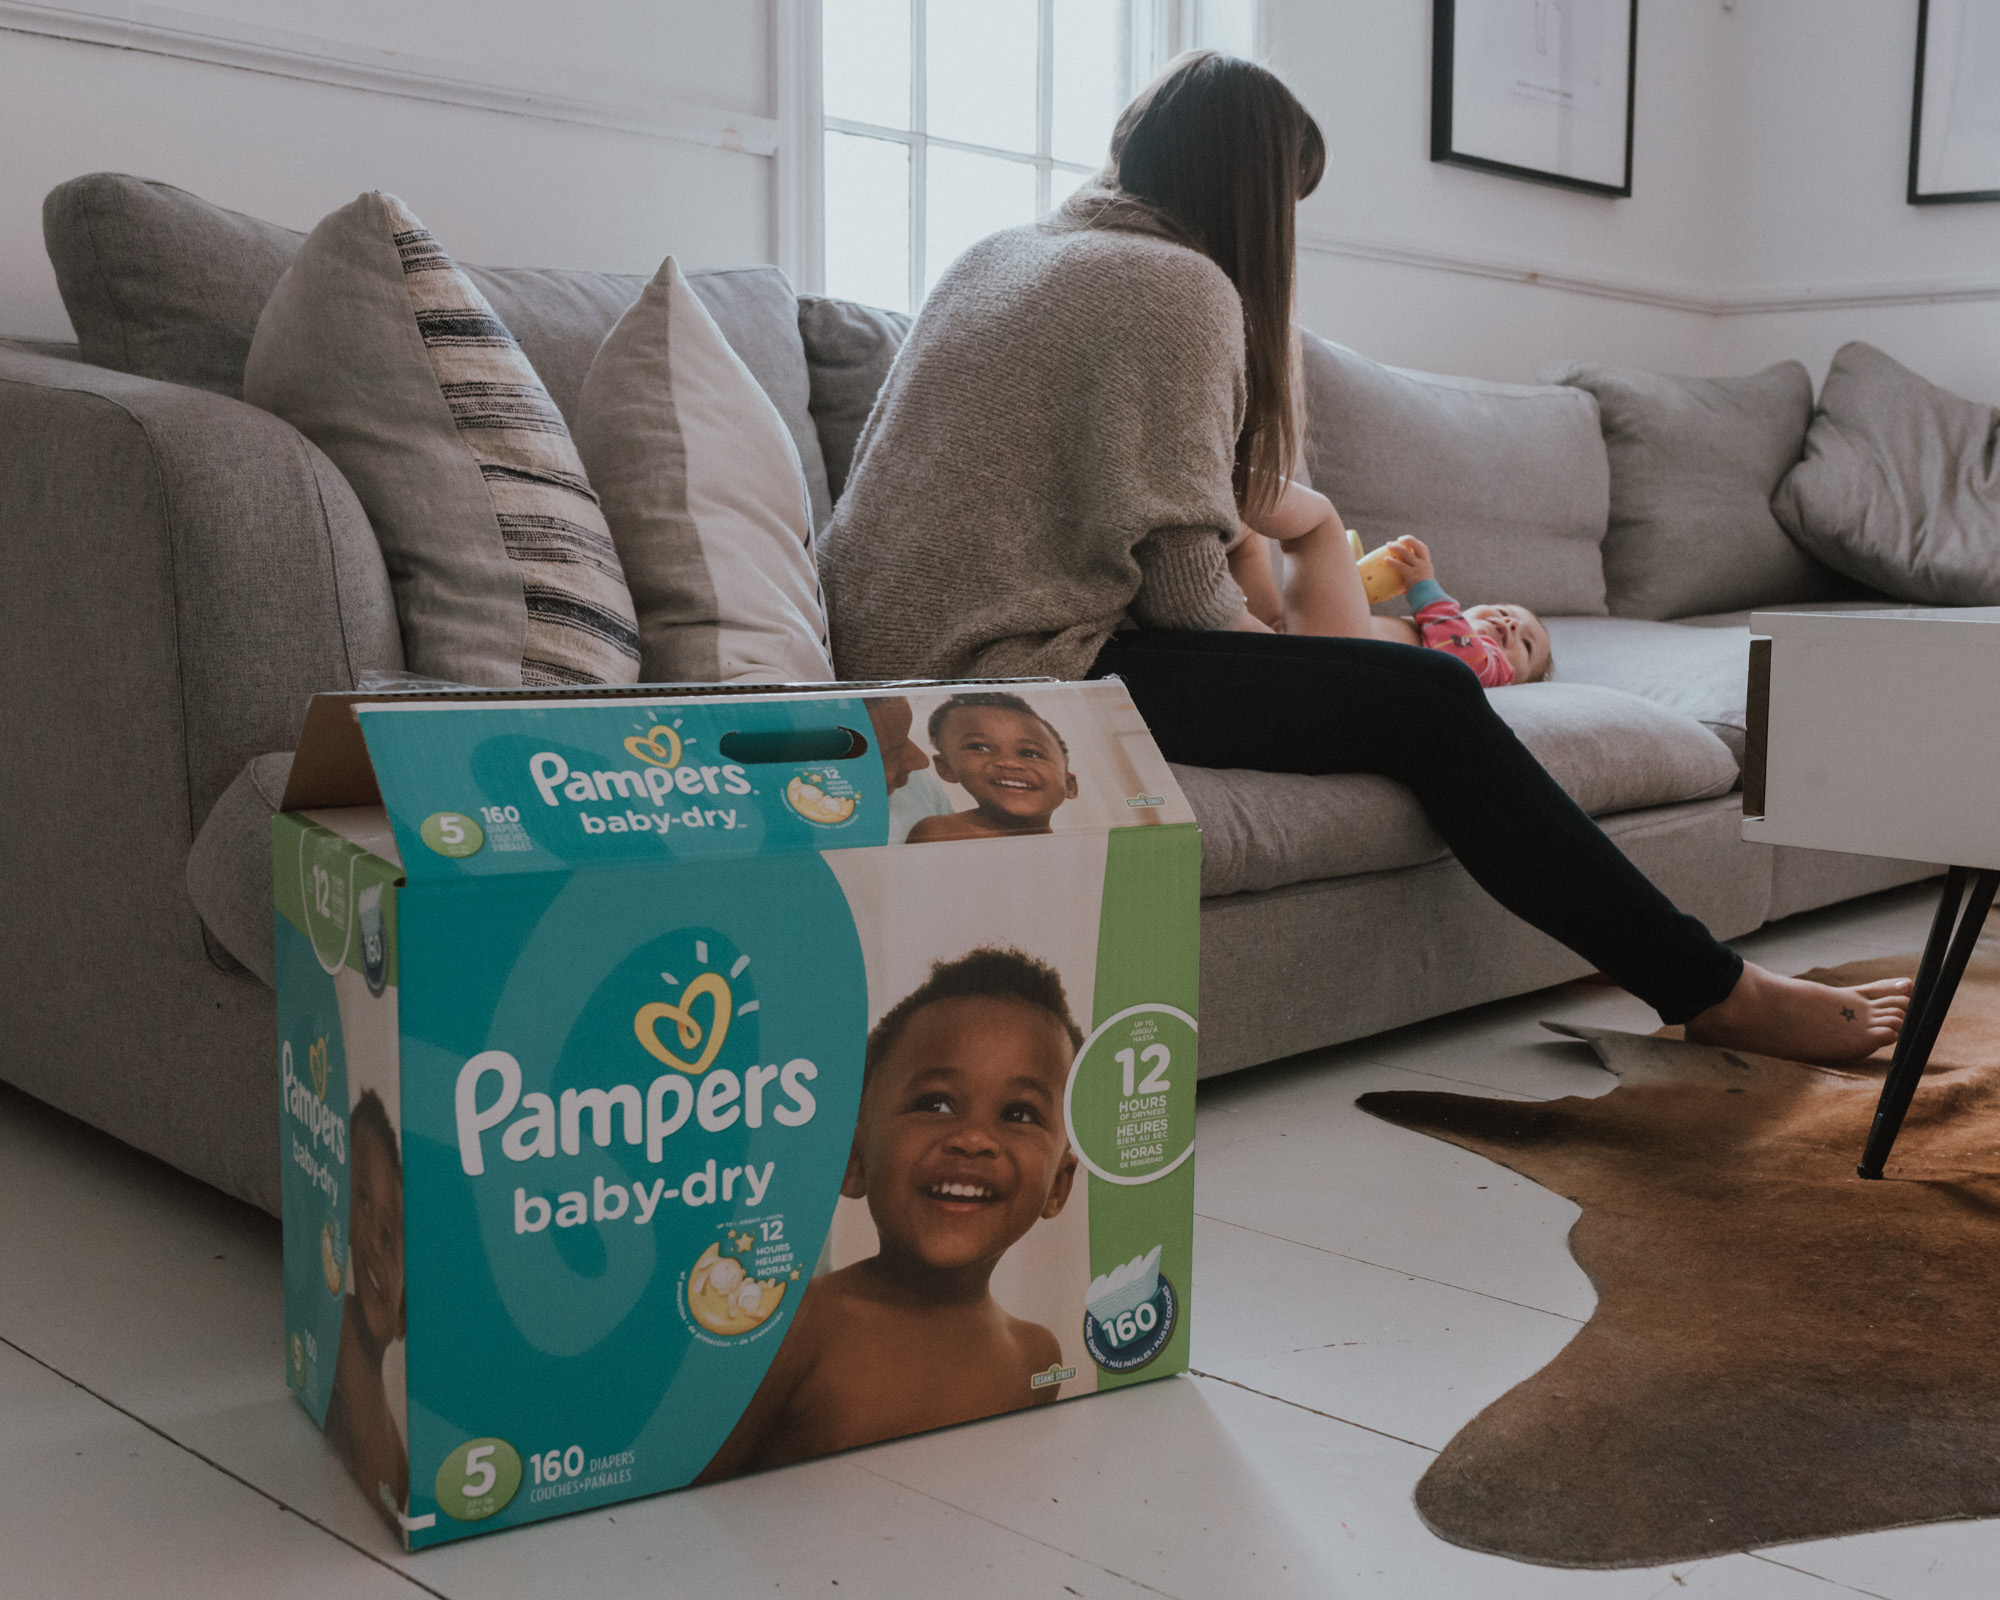 The Wild Decoelis | Pamper Baby Dry Redeigned | the importance of a dry baby and sleep | How Pampers is helping with a new diaper